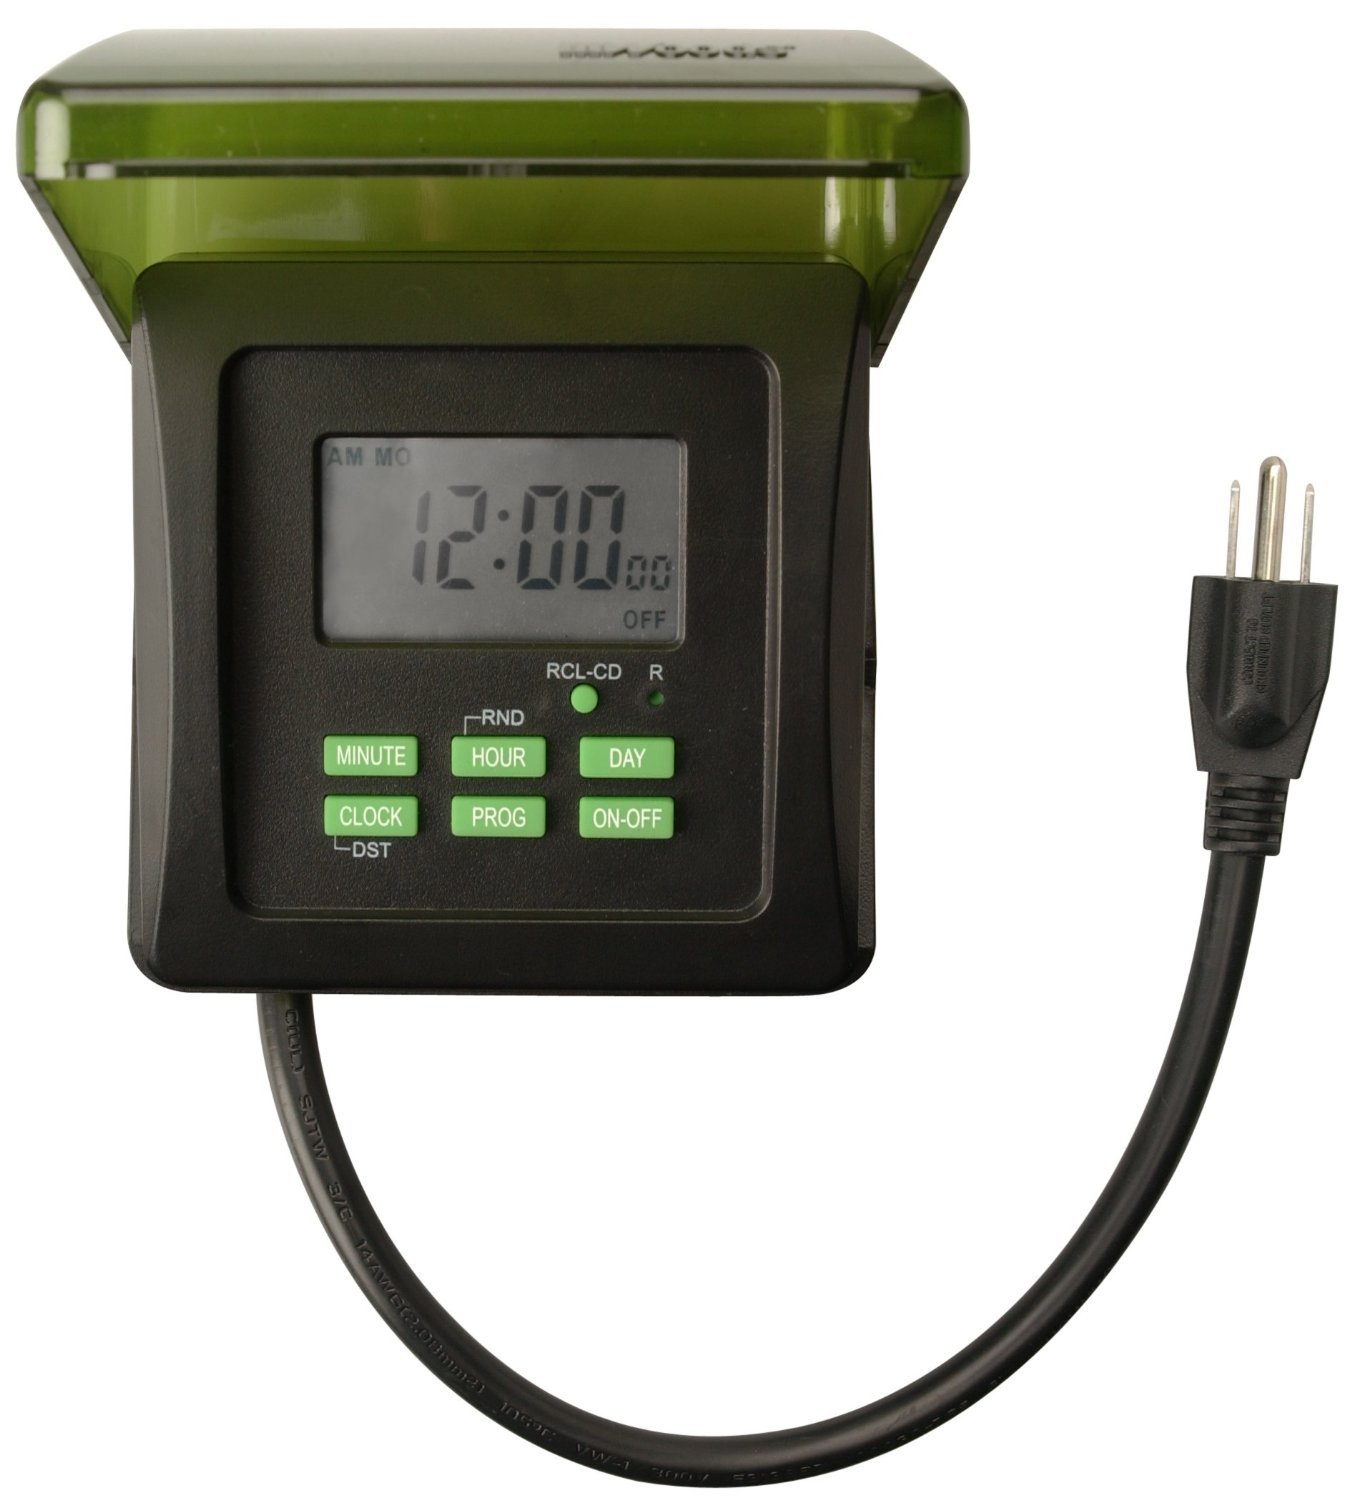 Coleman Cable 50015 6 Pack 7-Day Outdoor Digital Heavy Duty Timer by Woods (Image #1)